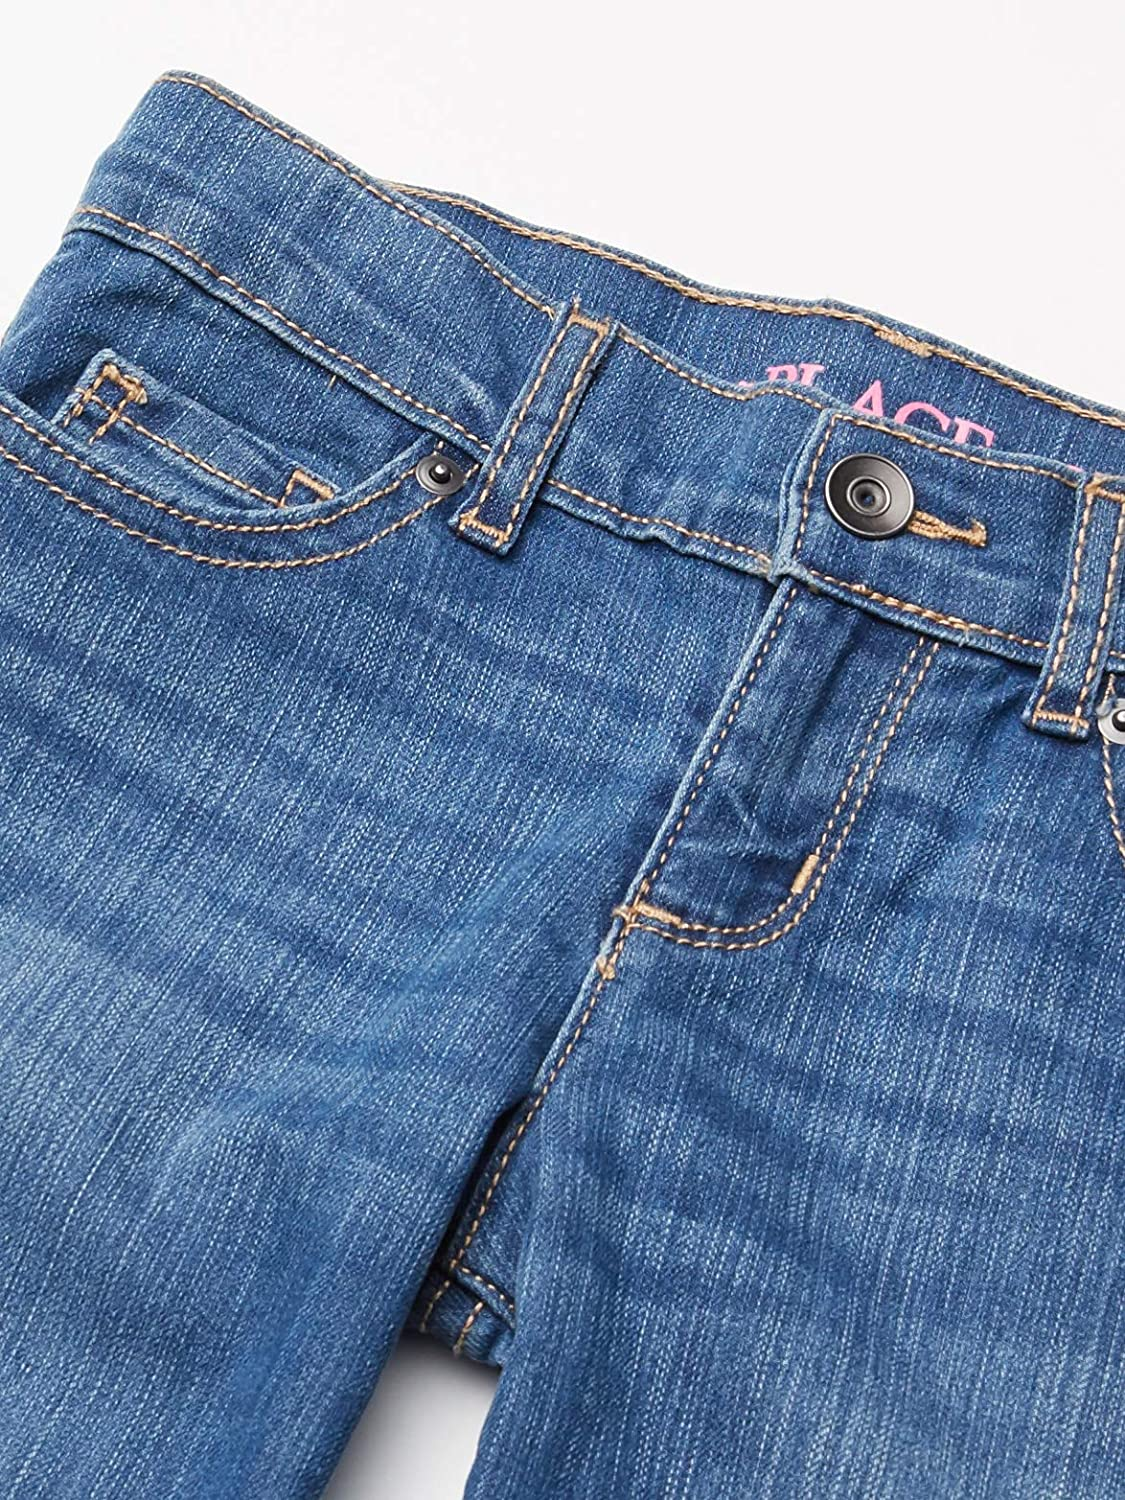 The Childrens Place Girls Basic Skinny Jeans